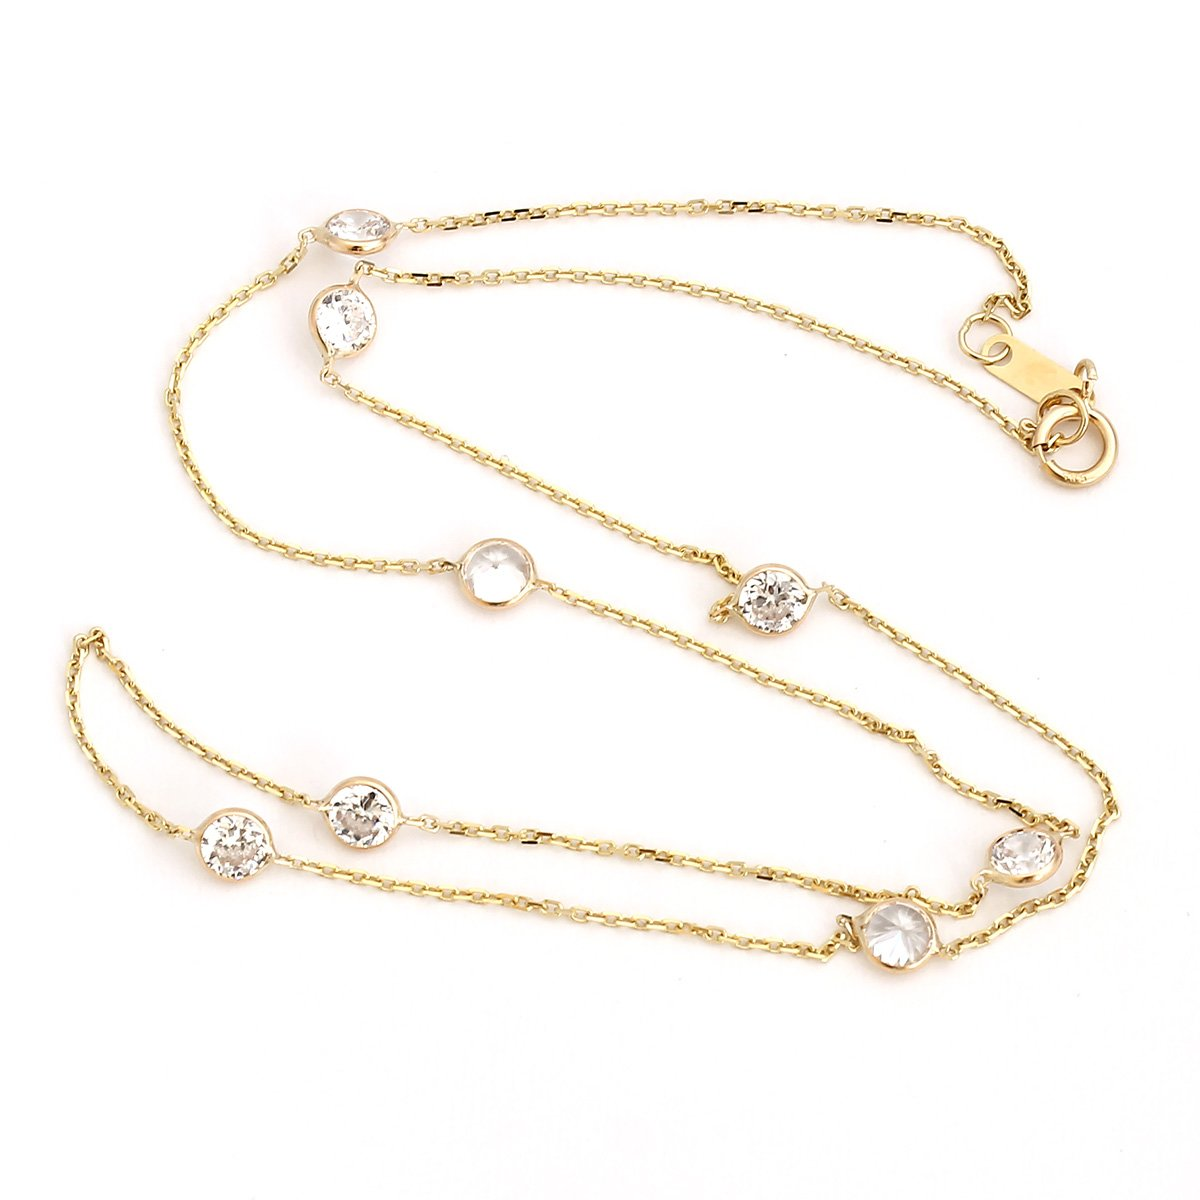 14k Yellow Gold Cubic Zirconia CZ Station Necklace, 16 Inches by Beauniq